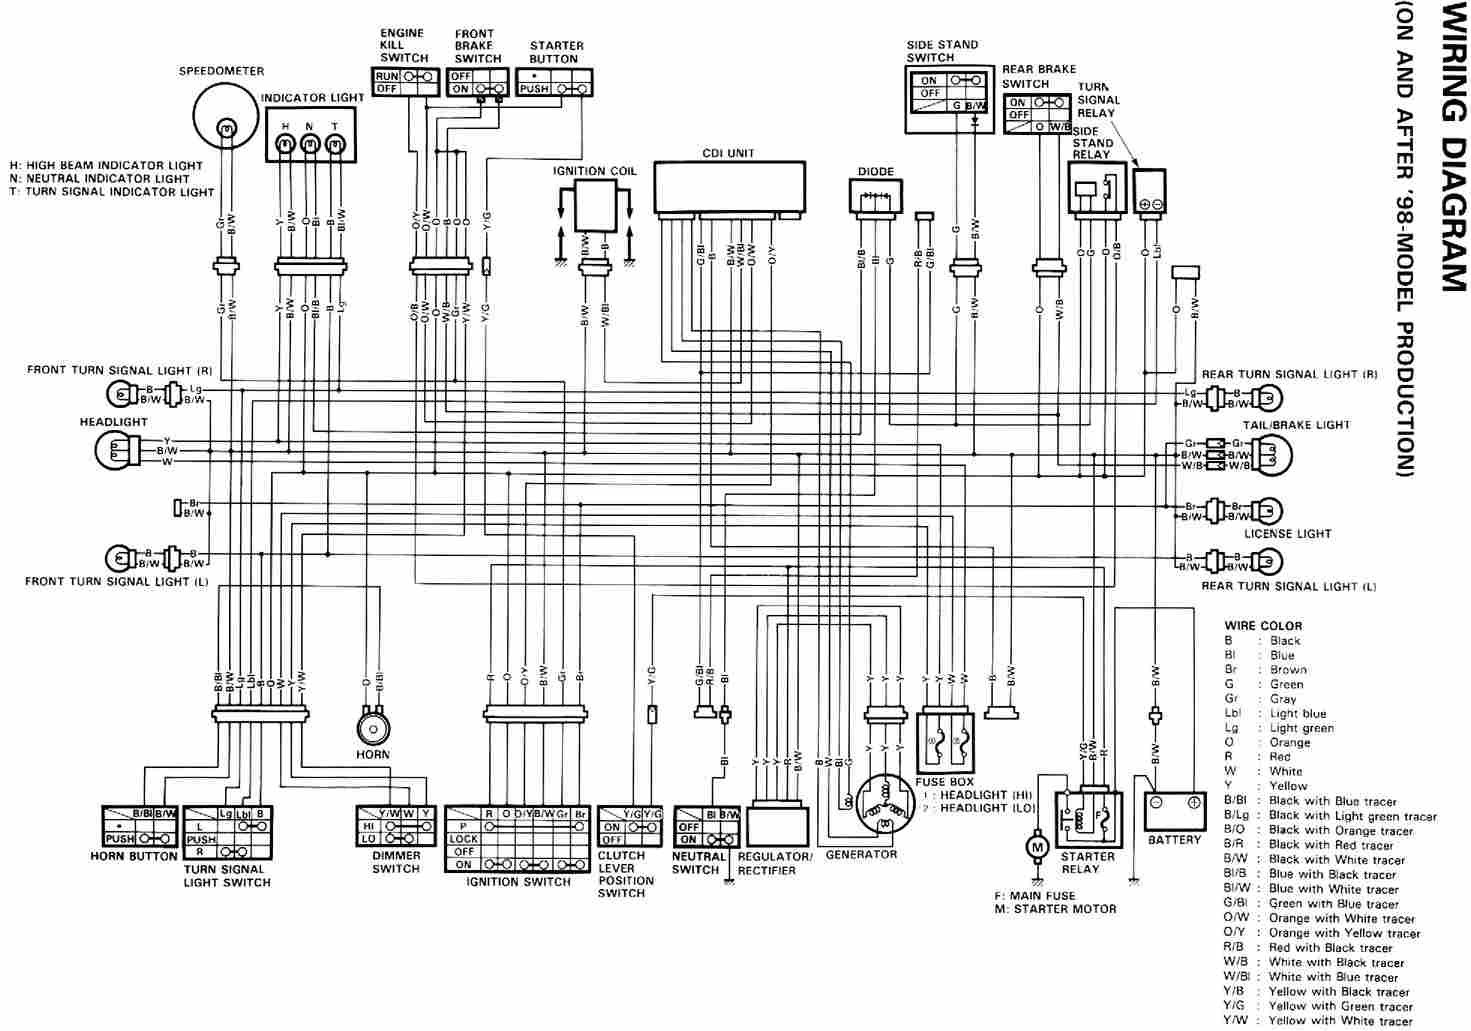 wiring diagram of 1998 suzuki dr650